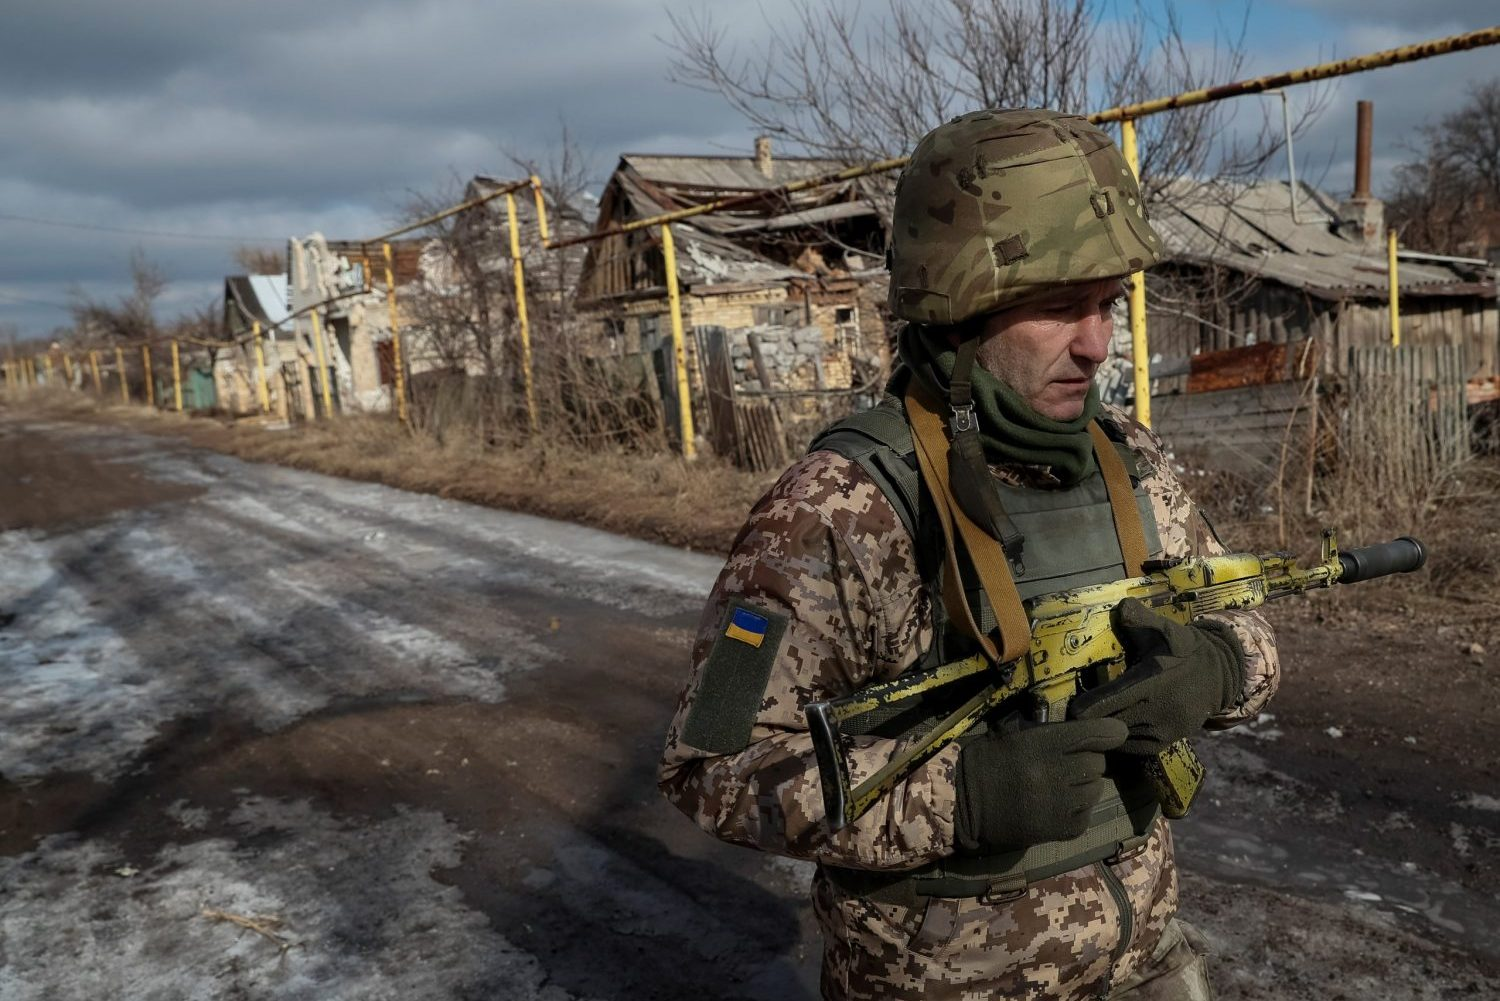 Living next door to a superpower: How Canada's experience can help Ukraine